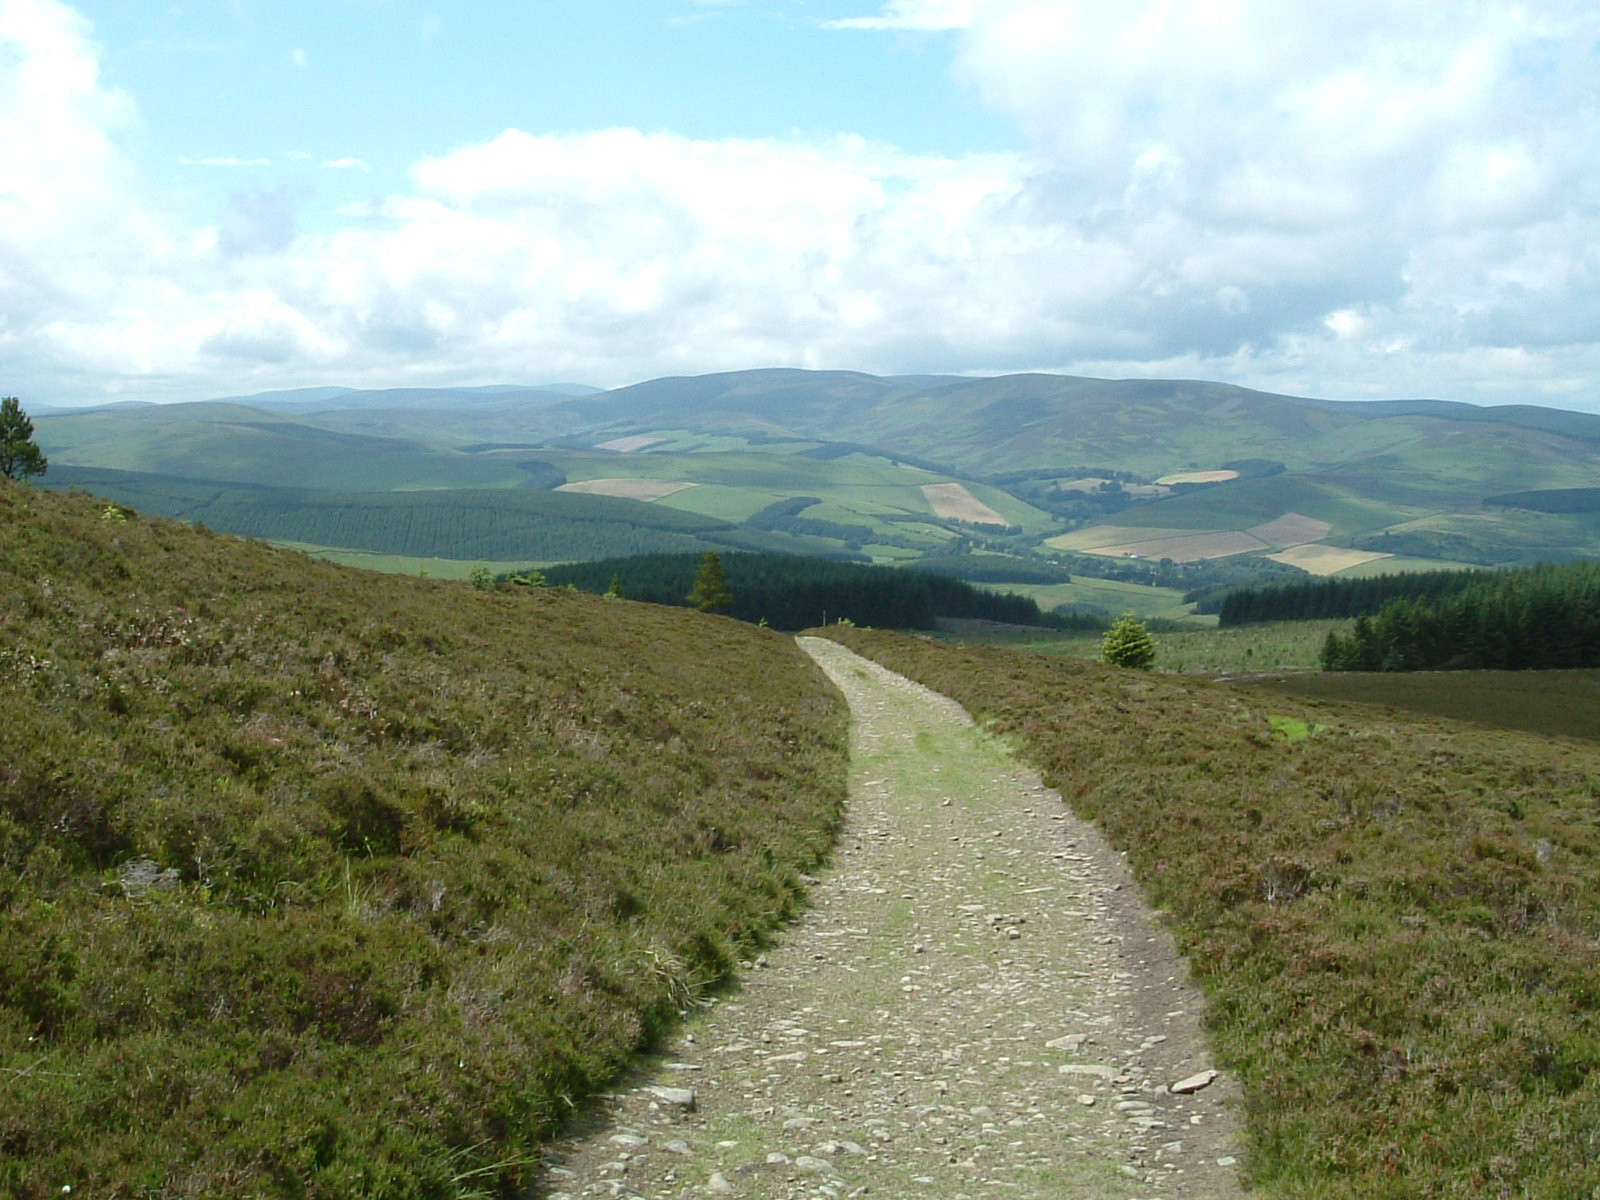 Descending from Elibank and Traquair Forest towards Traquair